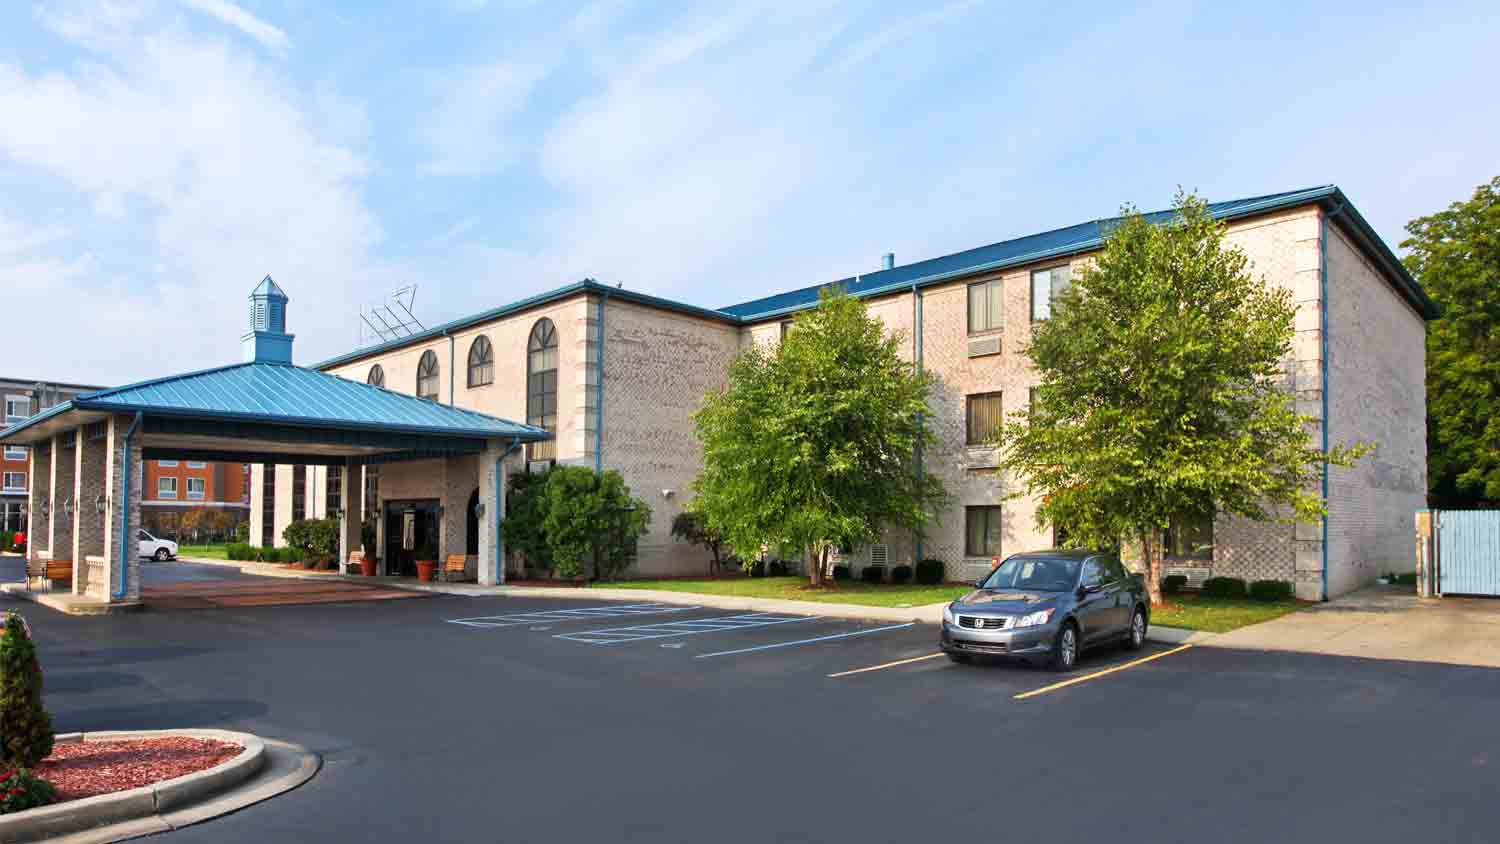 Baymont Inn & Suites - Indianapolis Airport/Plainfield